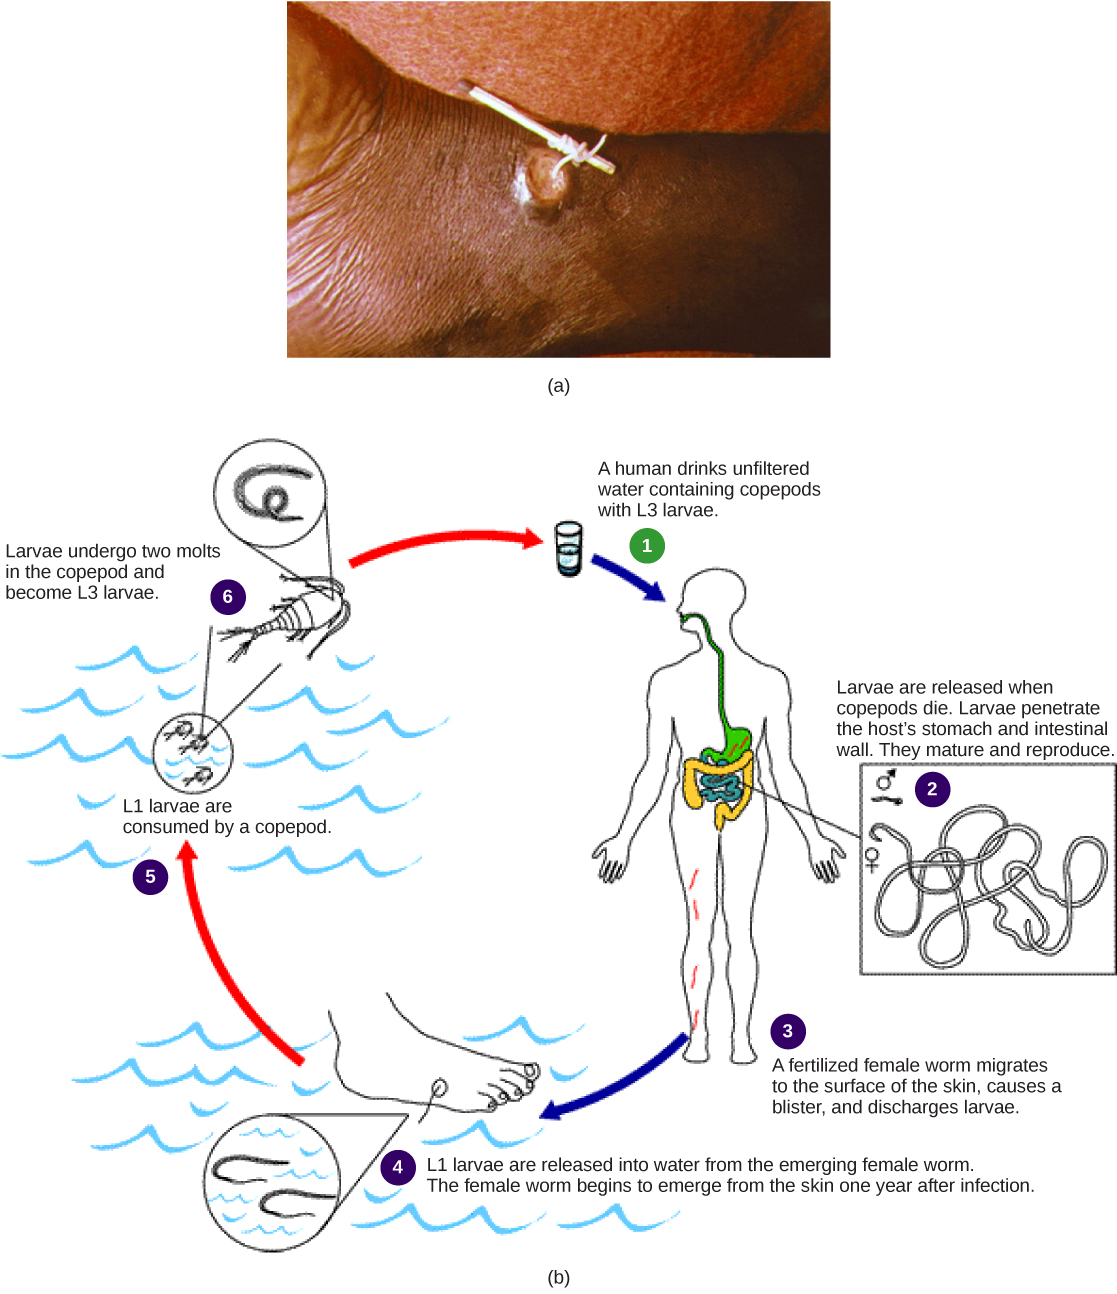 Part A shows a foot with a guinea worm extending from a blister. The end of the worm is wrapped around a stick. Part B shows the life cycle of the guinea worm, which begins when a person drinks unfiltered water containing copepods infected with guinea worm larvae. Larvae, which are released when the copepods die, penetrate the wall of the stomach and intestine. The worms mature and reproduce. Fertilized females migrate to the surface of the skin, where they discharge larvae into the water. Copepods consume the larvae. The copepods are consumed by humans, completing the cycle. About a year after infection, the female worm emerges from the skin.